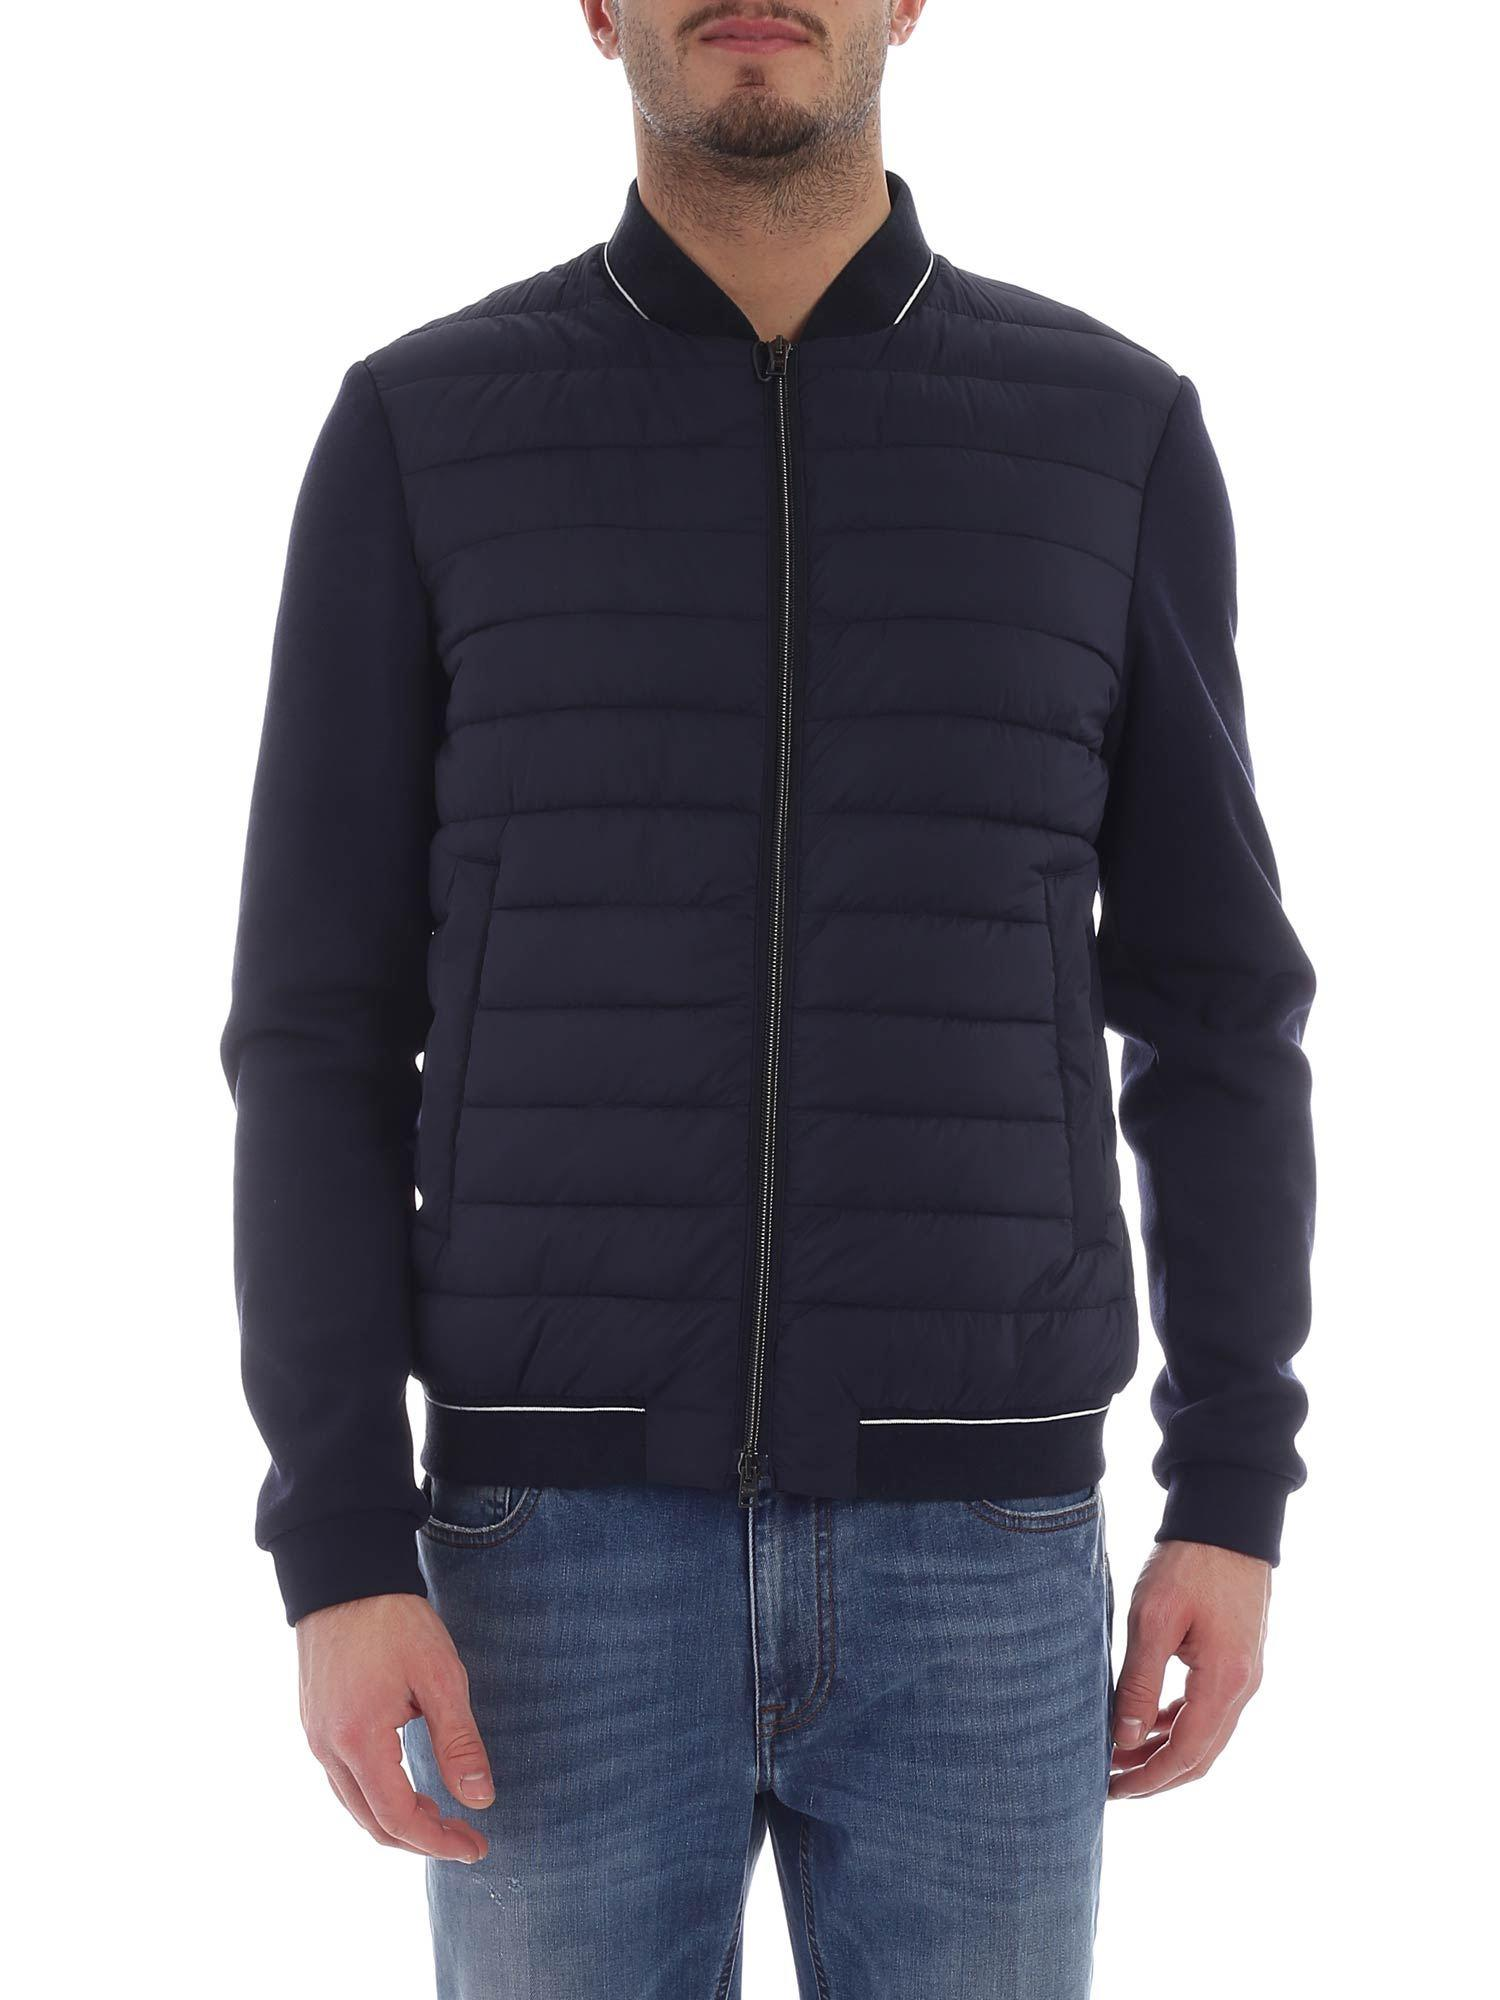 8536b28d1 Herno - Blue Bomber Jacket With Contrasting Sleeves for Men - Lyst. View  fullscreen